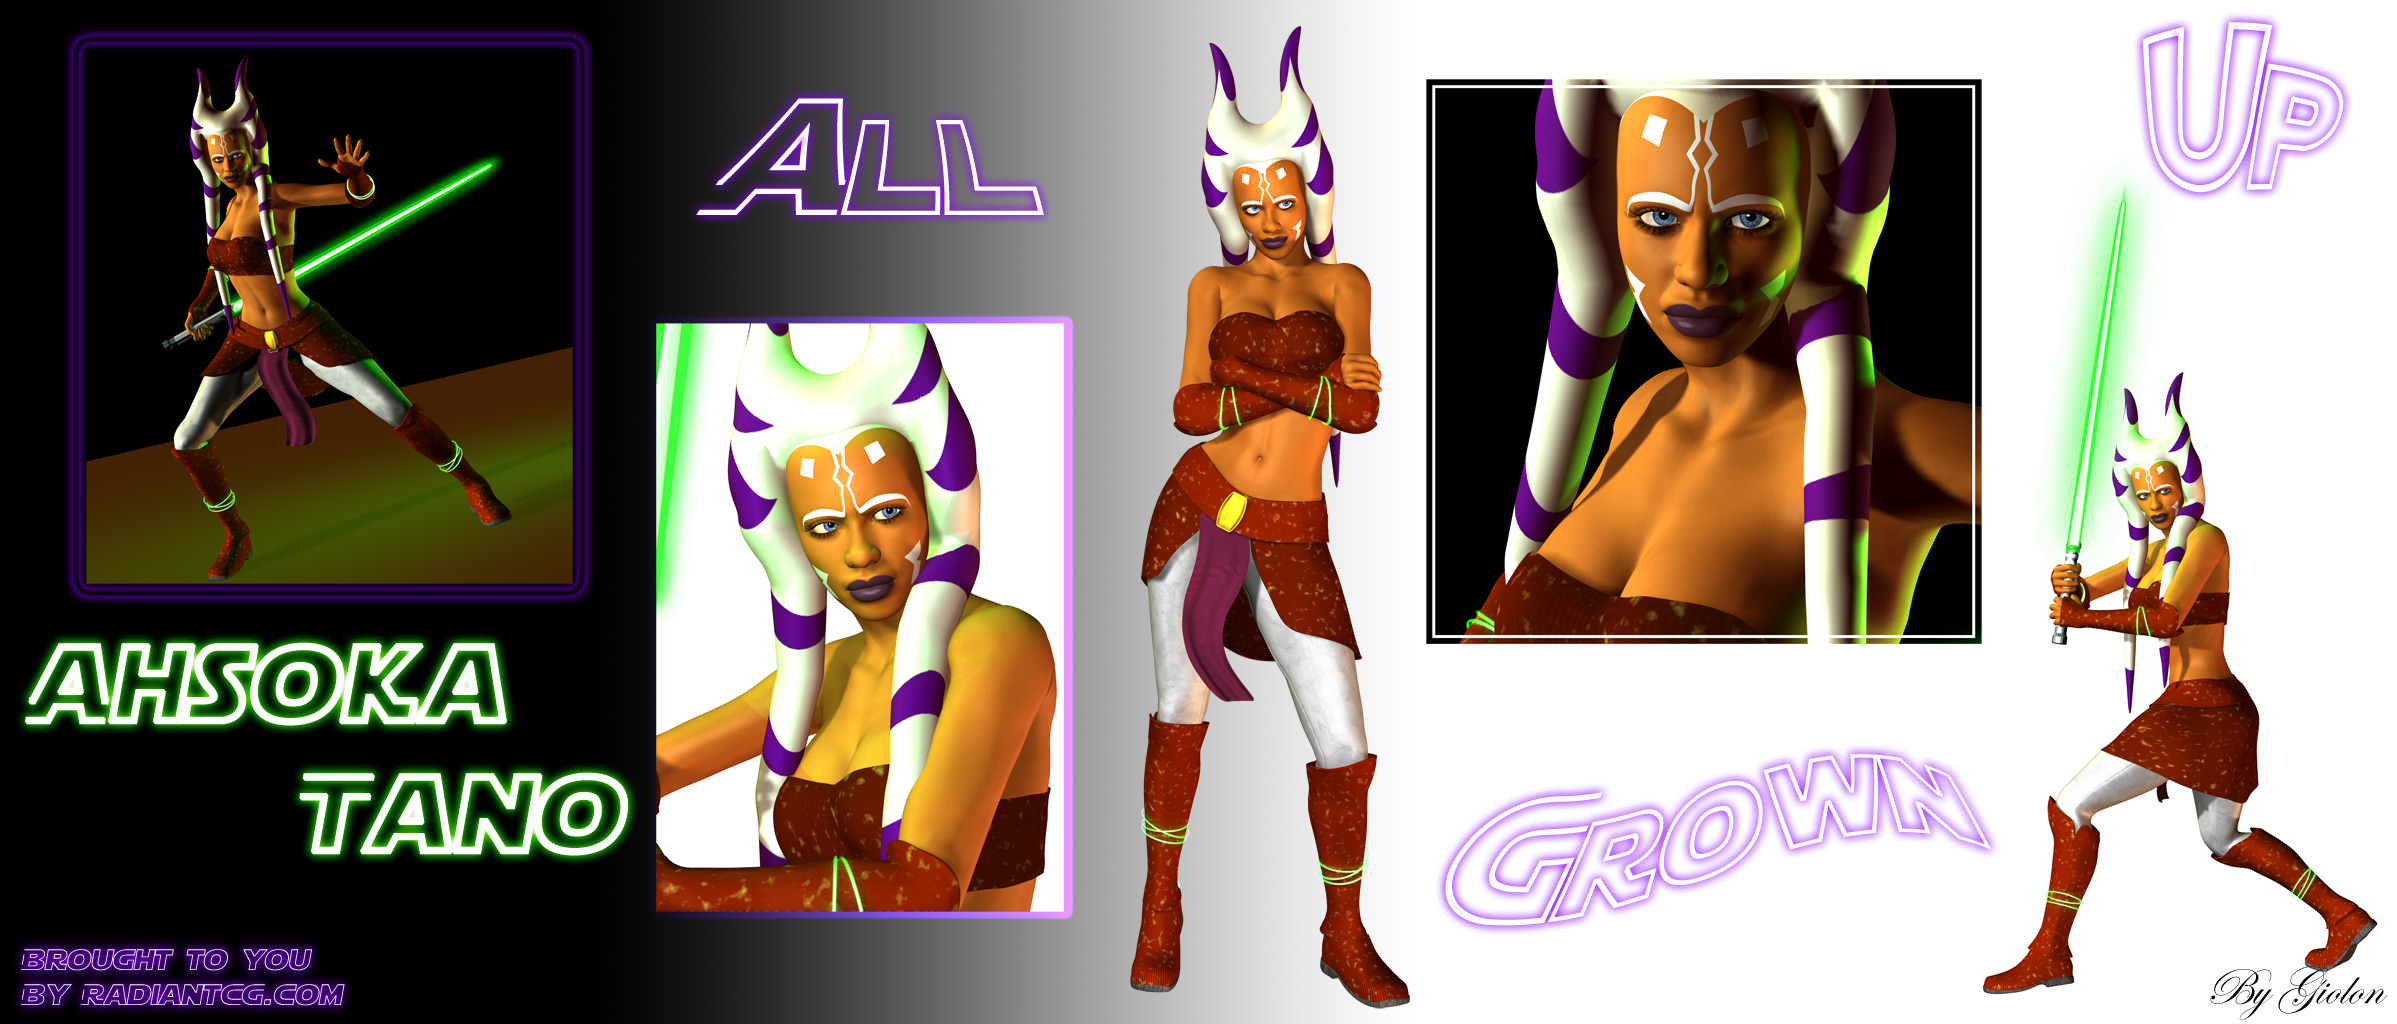 The Clone Wars: Ahsoka Tano - All Grown Up!